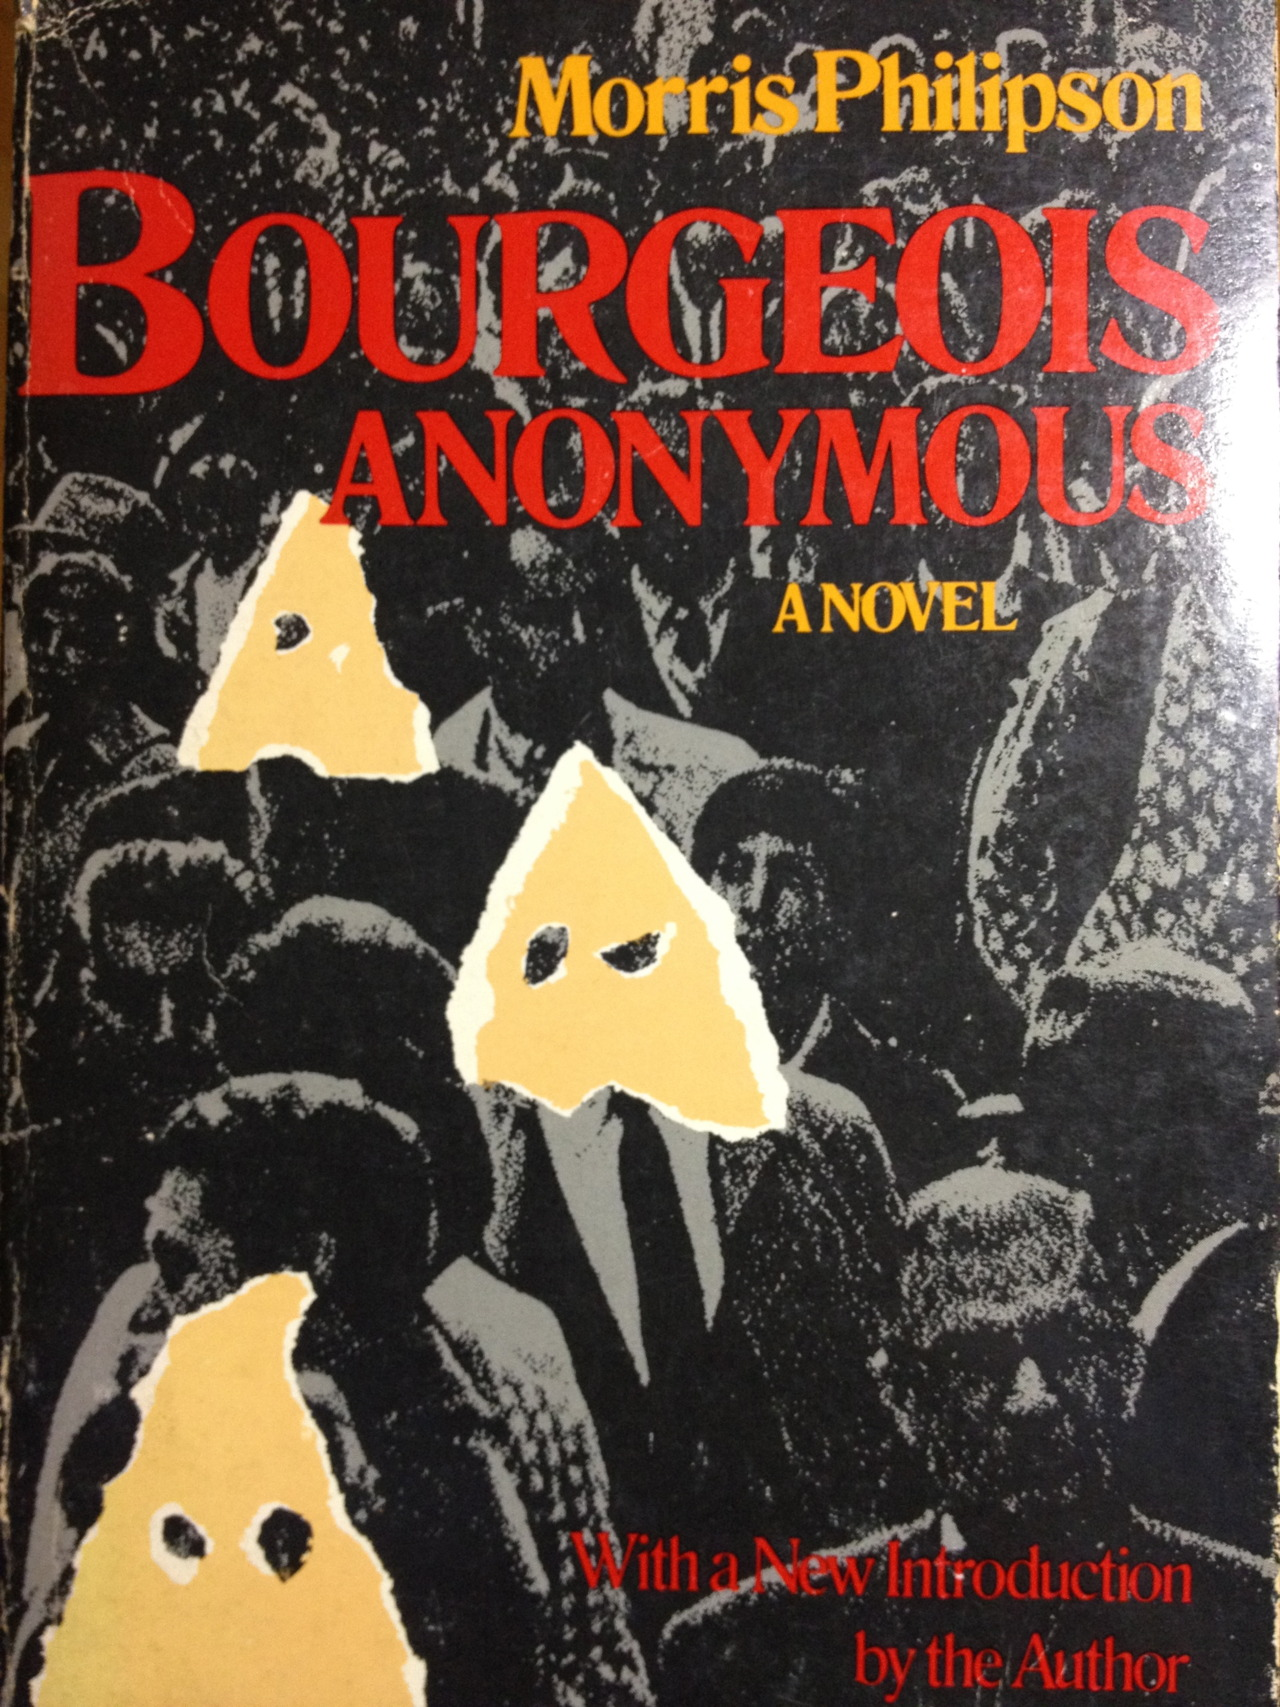 I bought this at Louie's Bookstore Cafe in Baltimore in the late 80's. It was first published in 1965; this was a reprint. In the opening pages, a young woman puts on a hood to protect her anonymity and enters a meeting where the bourgeois confess their sins of middle-class mediocrity and conformity. Satire.